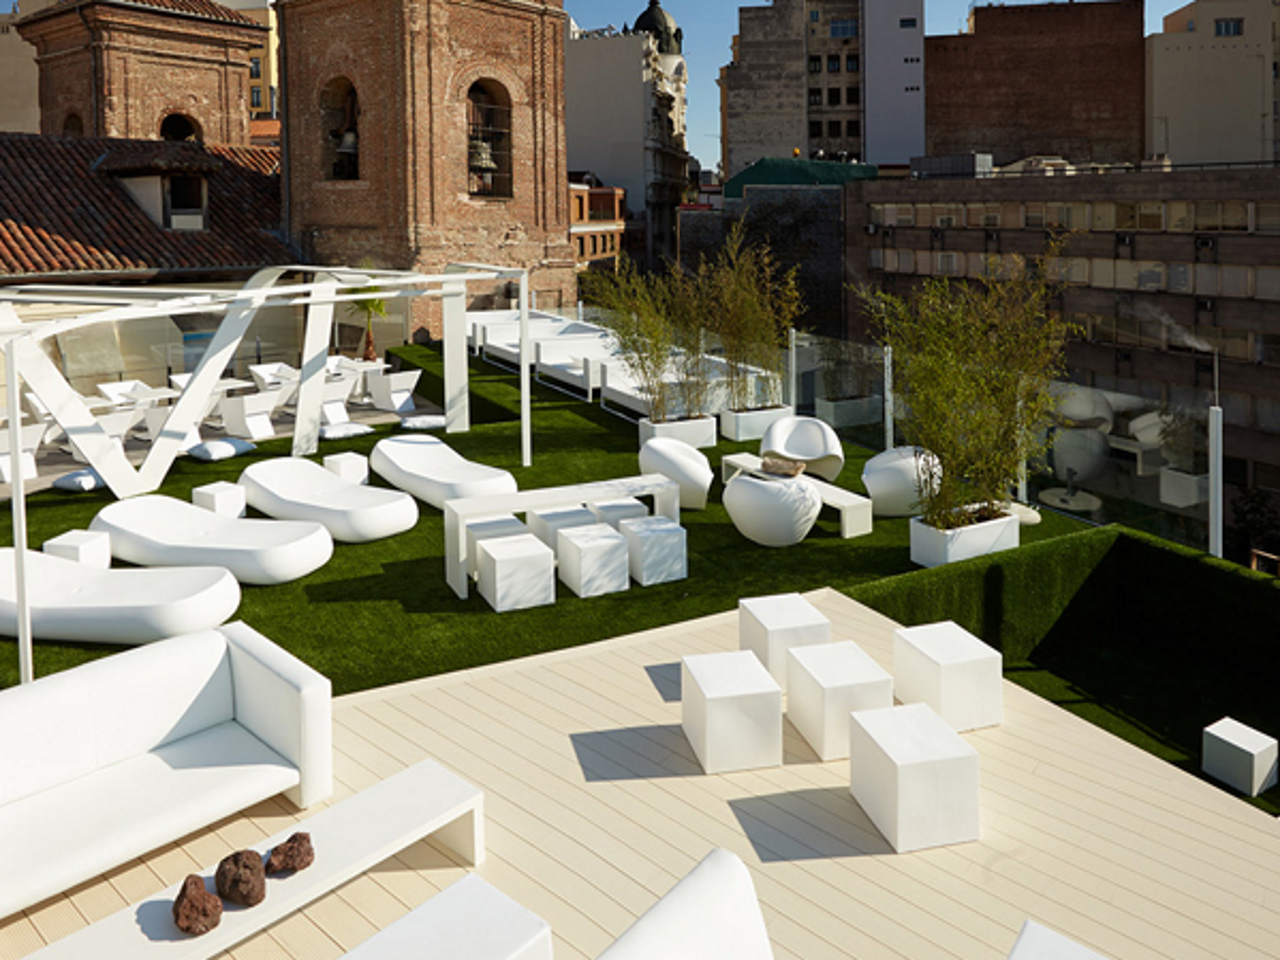 Instalaci n c sped artificial chill out terraza gymage madrid for Terraza chill out